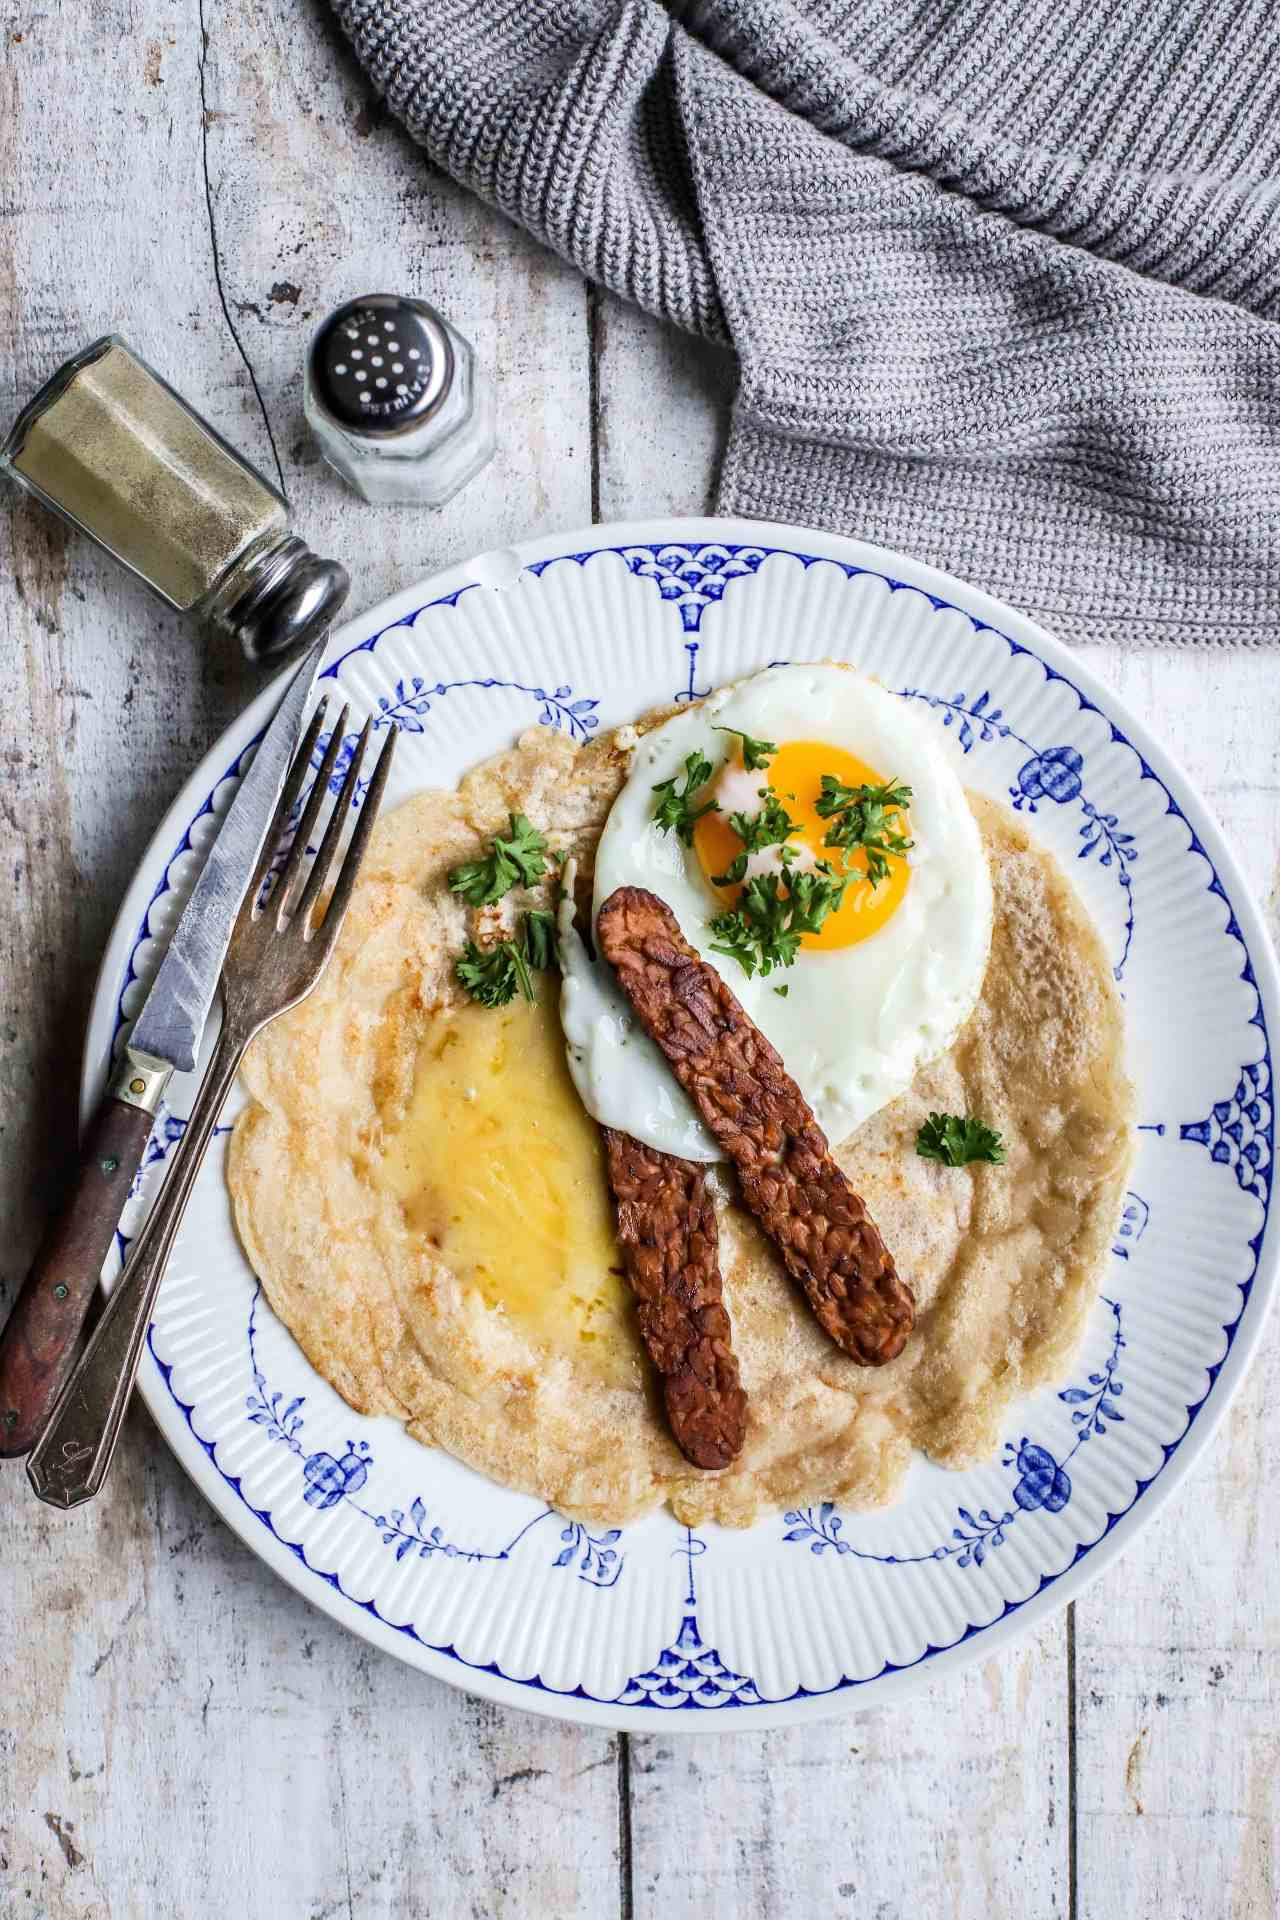 Traditionally Staffordshire oatcakes are a savory, yeasted #pancake made from #oats, flour and milk. This is a #vegan, #sourdough version that we think is even tastier, and also incredibly versatile.